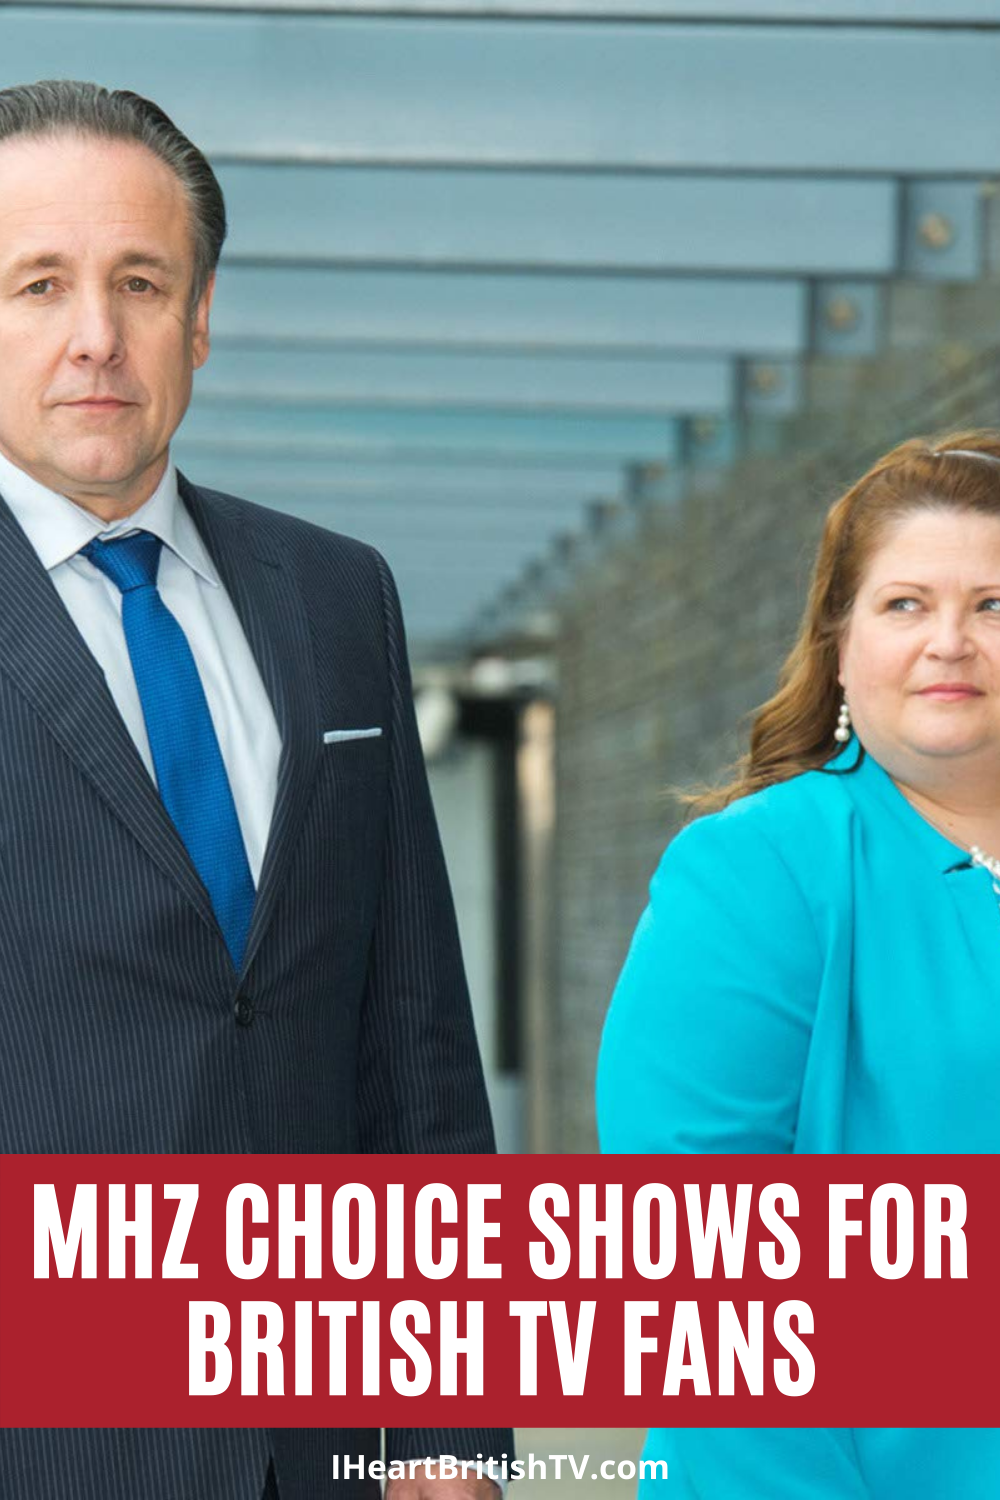 British TV Shows on MHz Choice (& a Few Others of Interest to British TV Fans) 15